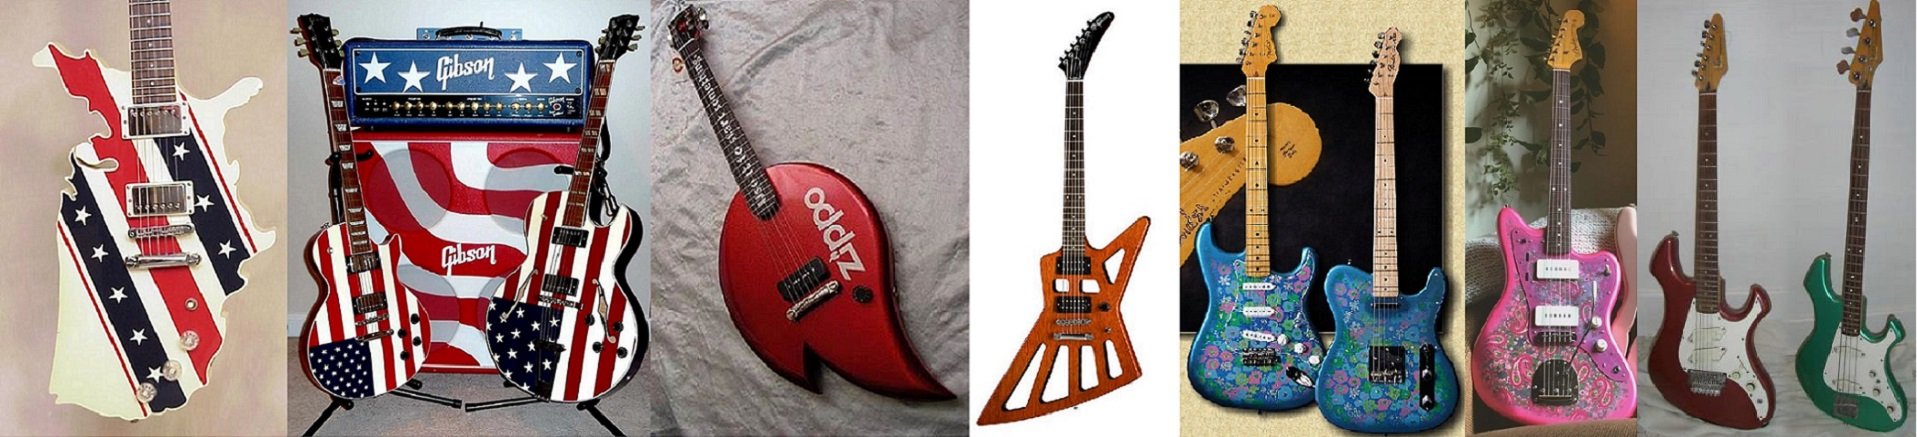 American guitars with different colors and shapes.